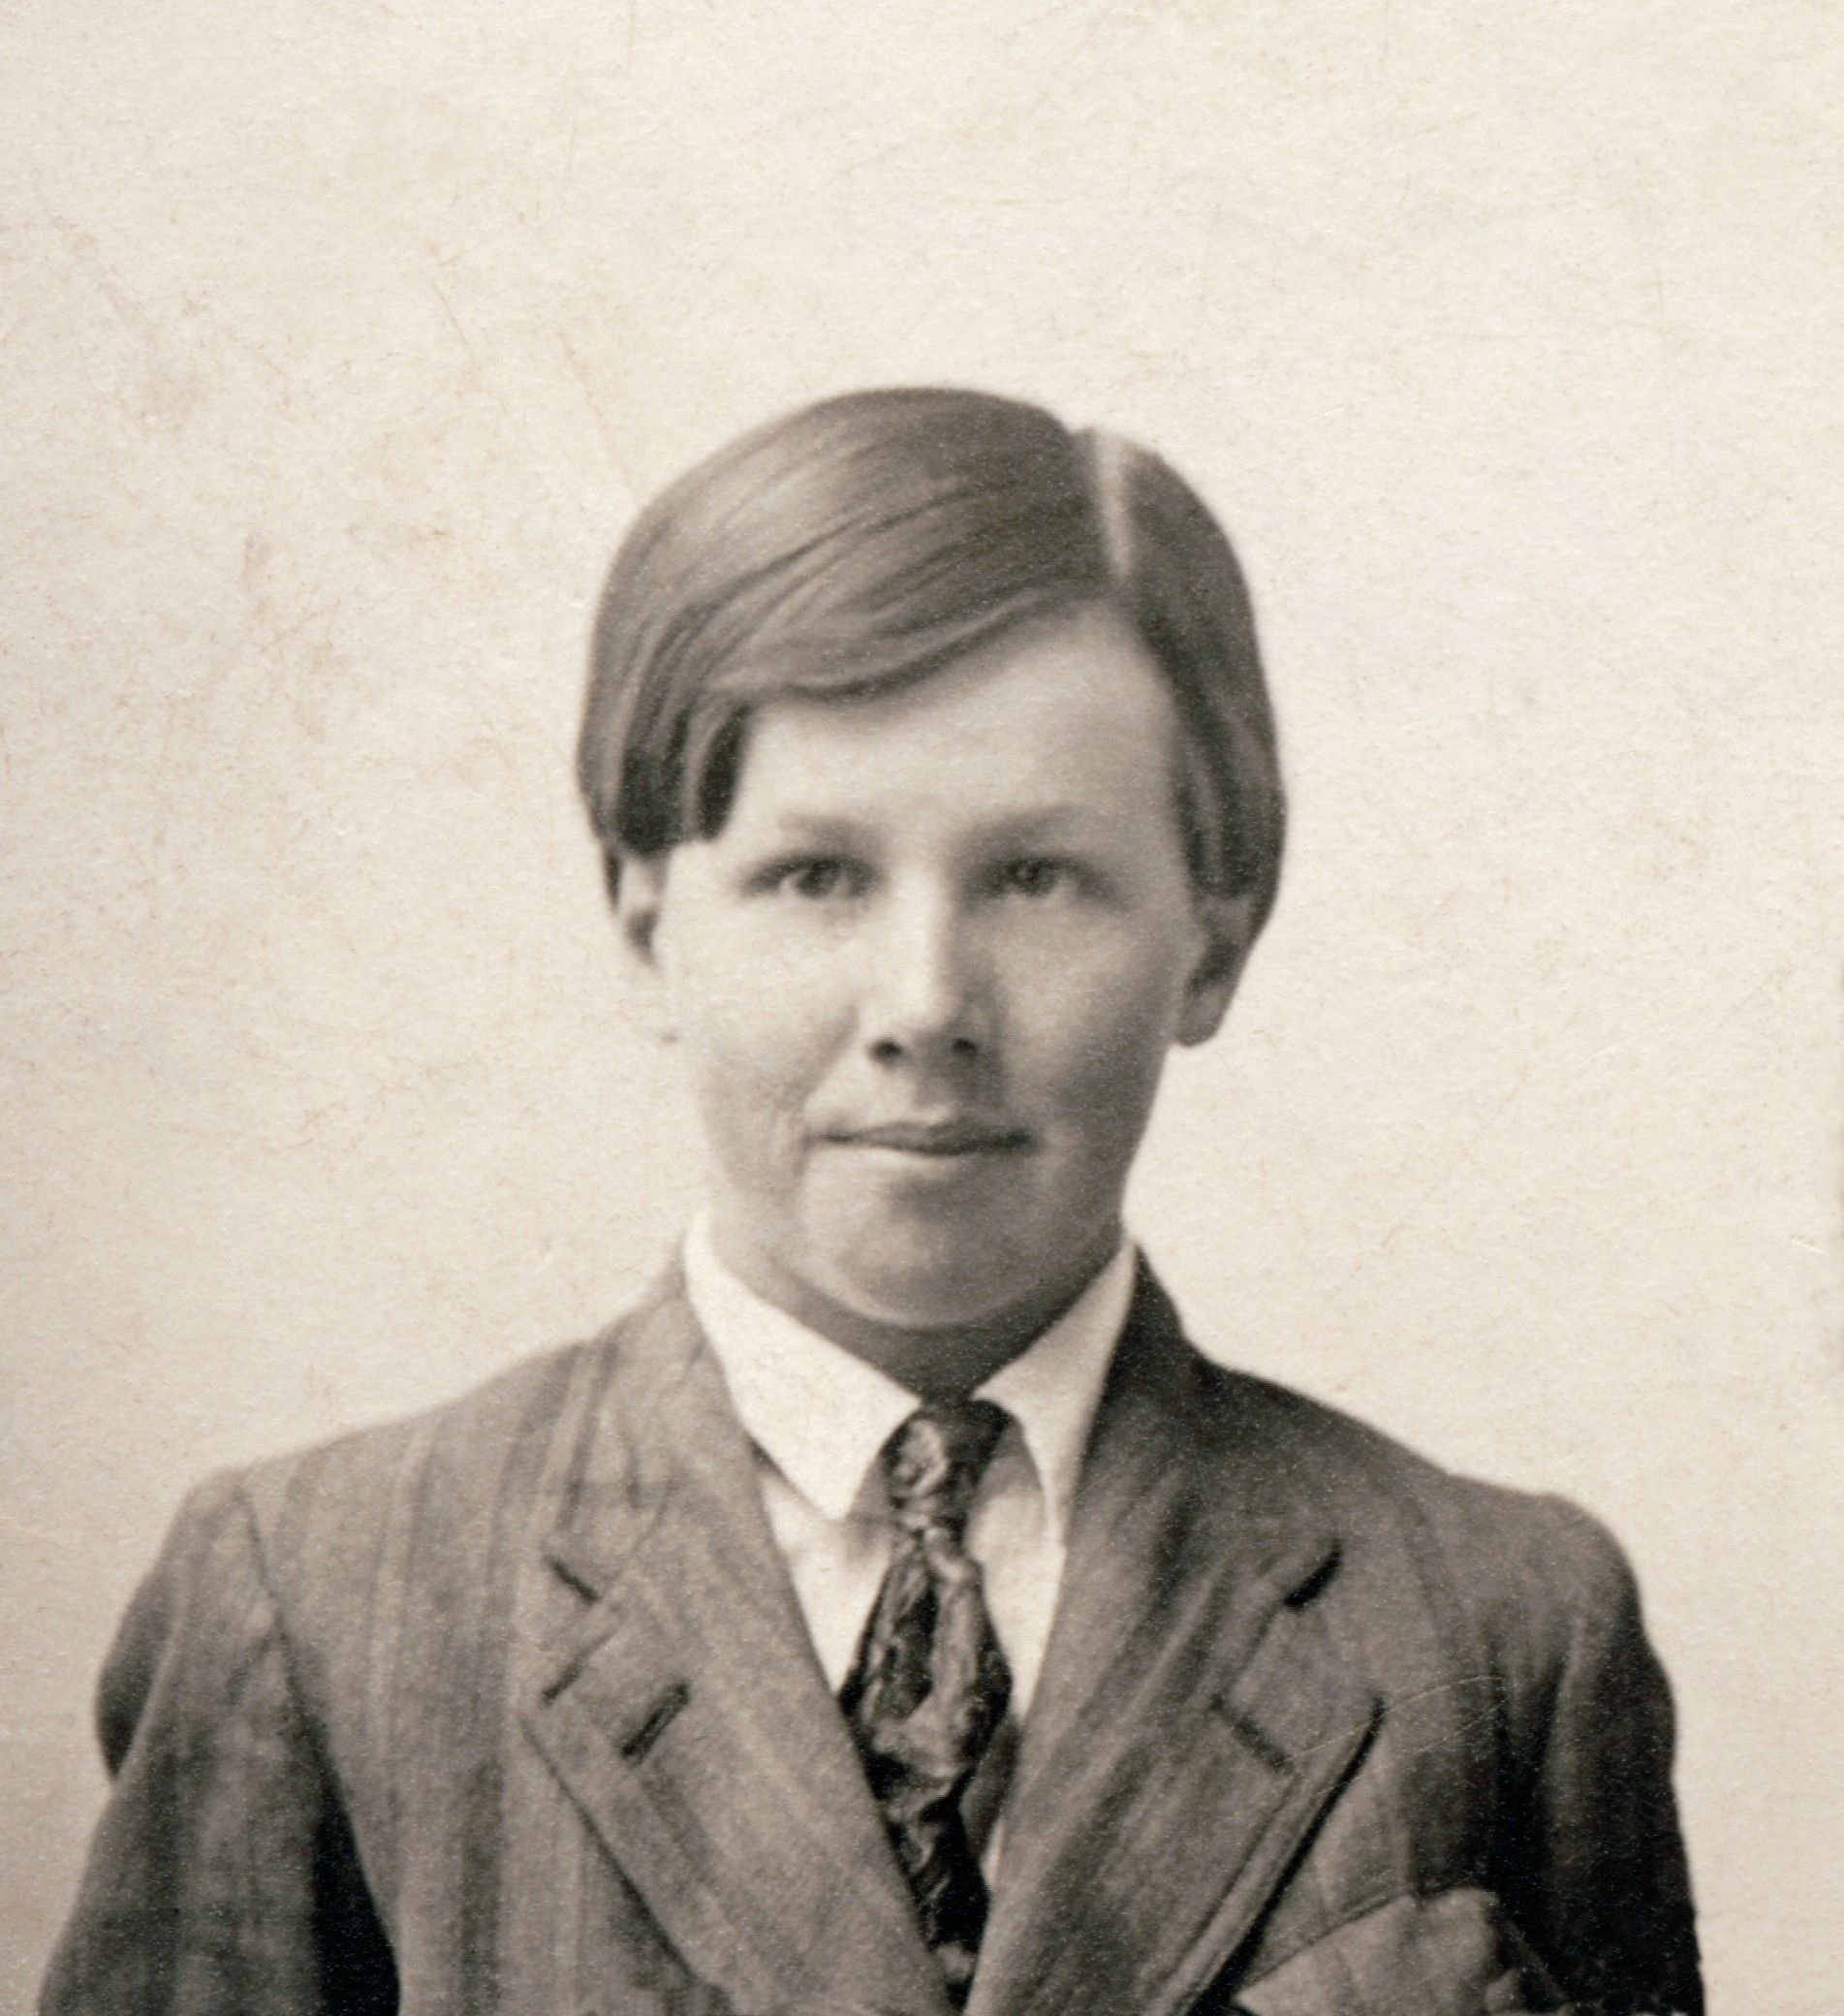 President Benson as a young man with his hair parted, wearing a suit and tie.